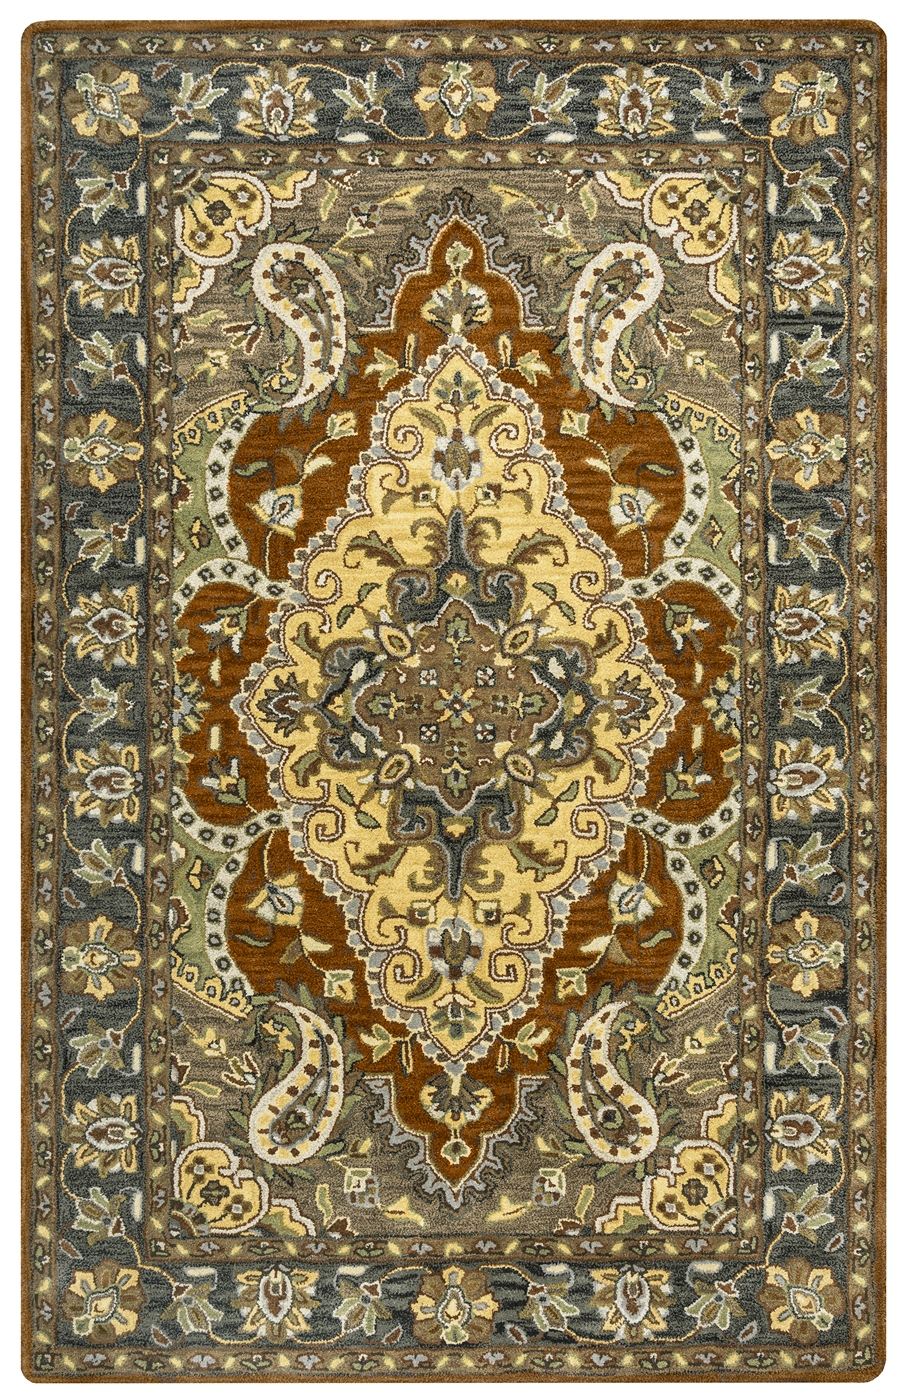 Valintino Floral Paisley Pattern Wool Area Rug In Blue Tan